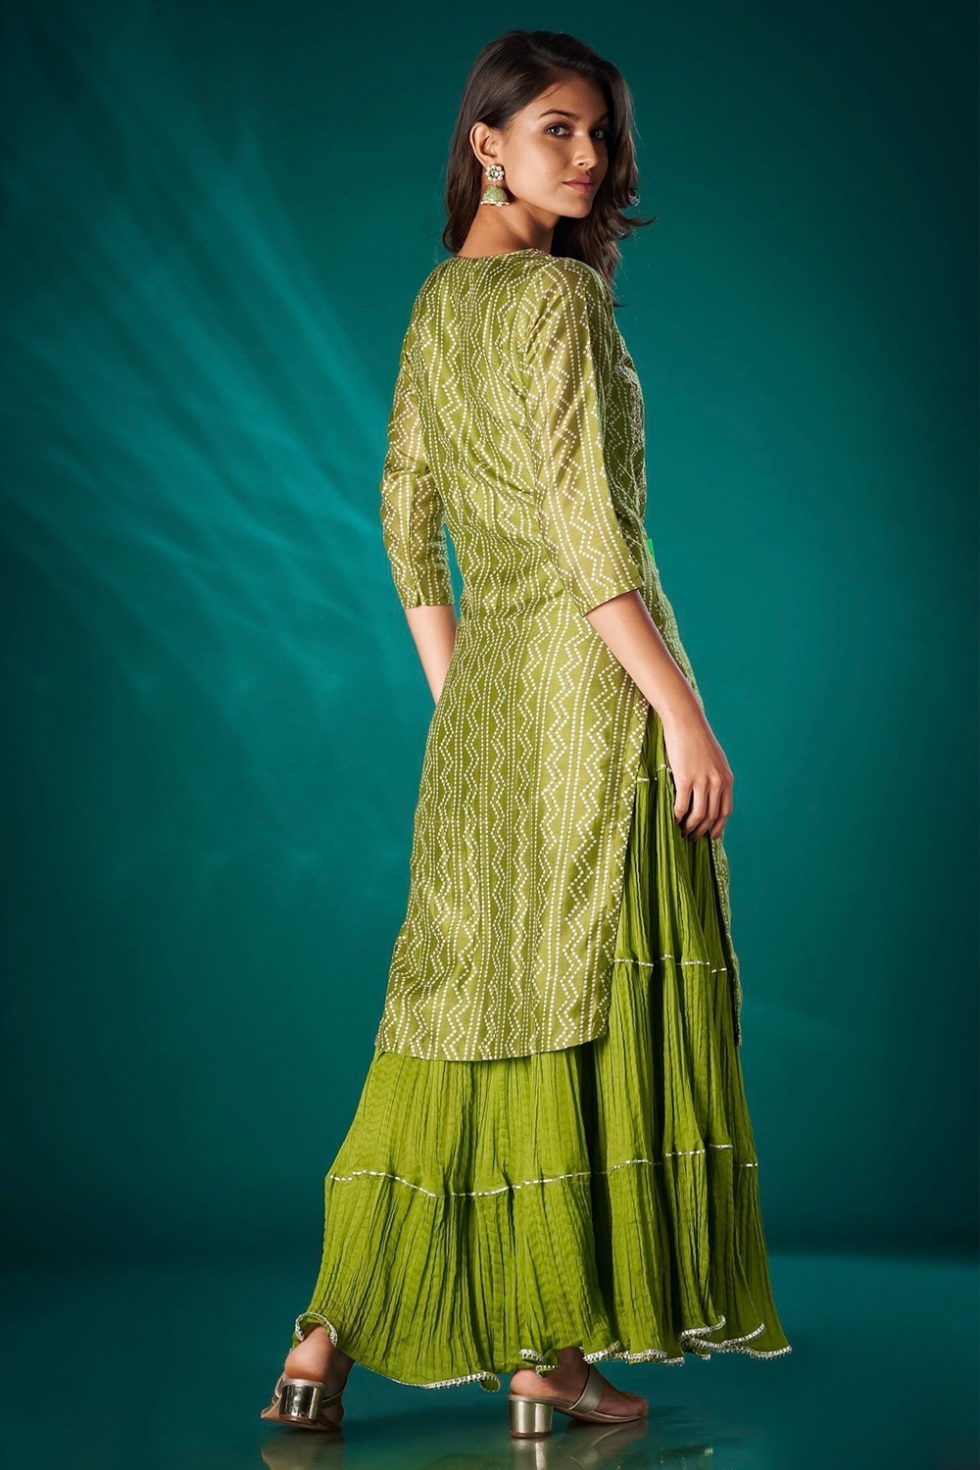 Fern green long printed kurti set with and attached tiered layer and gota work.